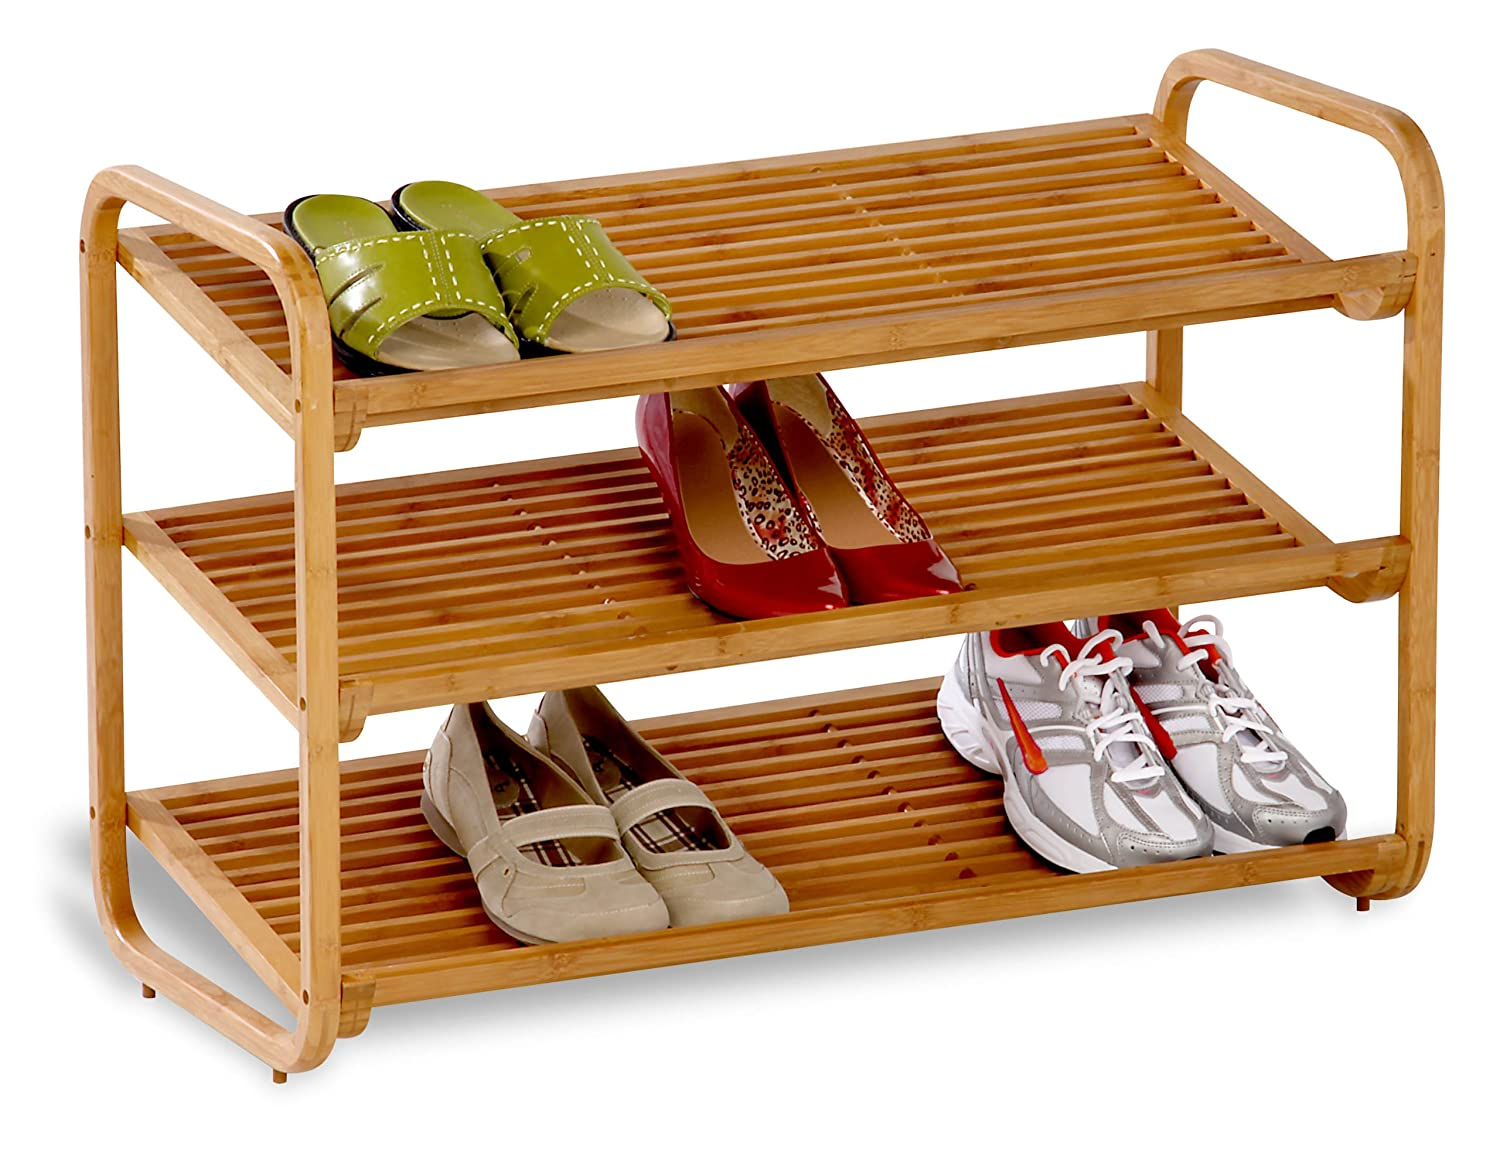 Marvelous photograph of Best Waterproof Outdoor Shoe Rack CHECK   with #853609 color and 1500x1156 pixels